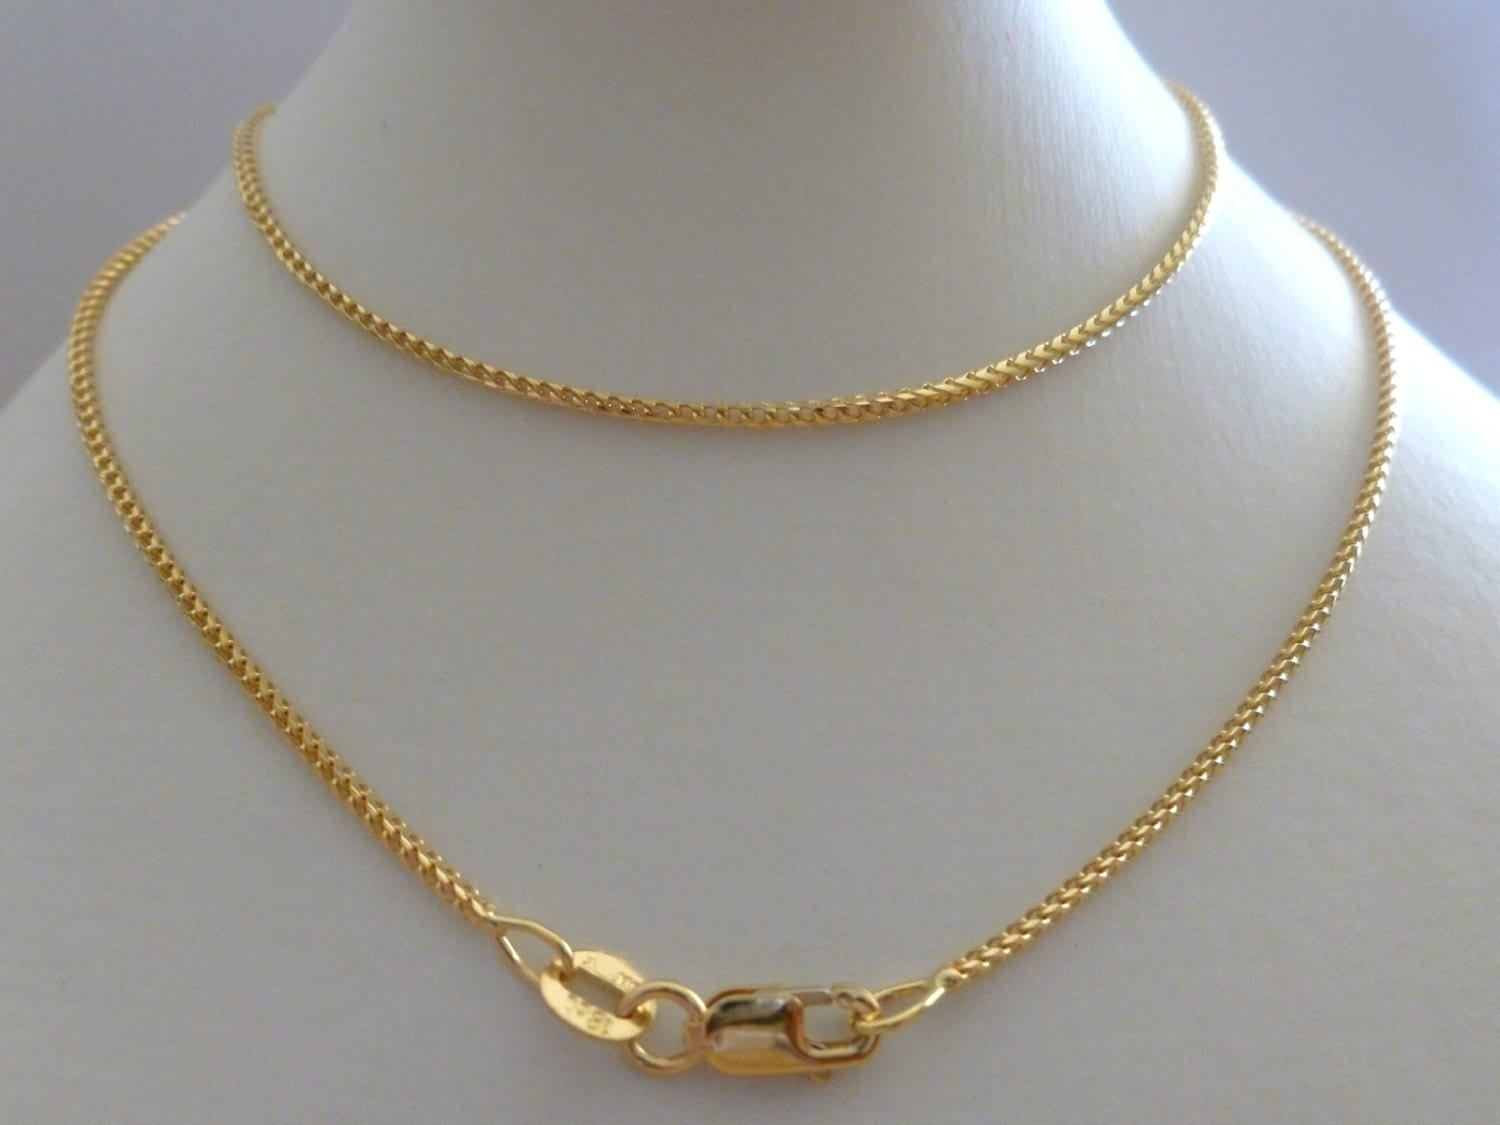 18k 18ct Solid Yellow Gold Franco Chain Men Women Necklace